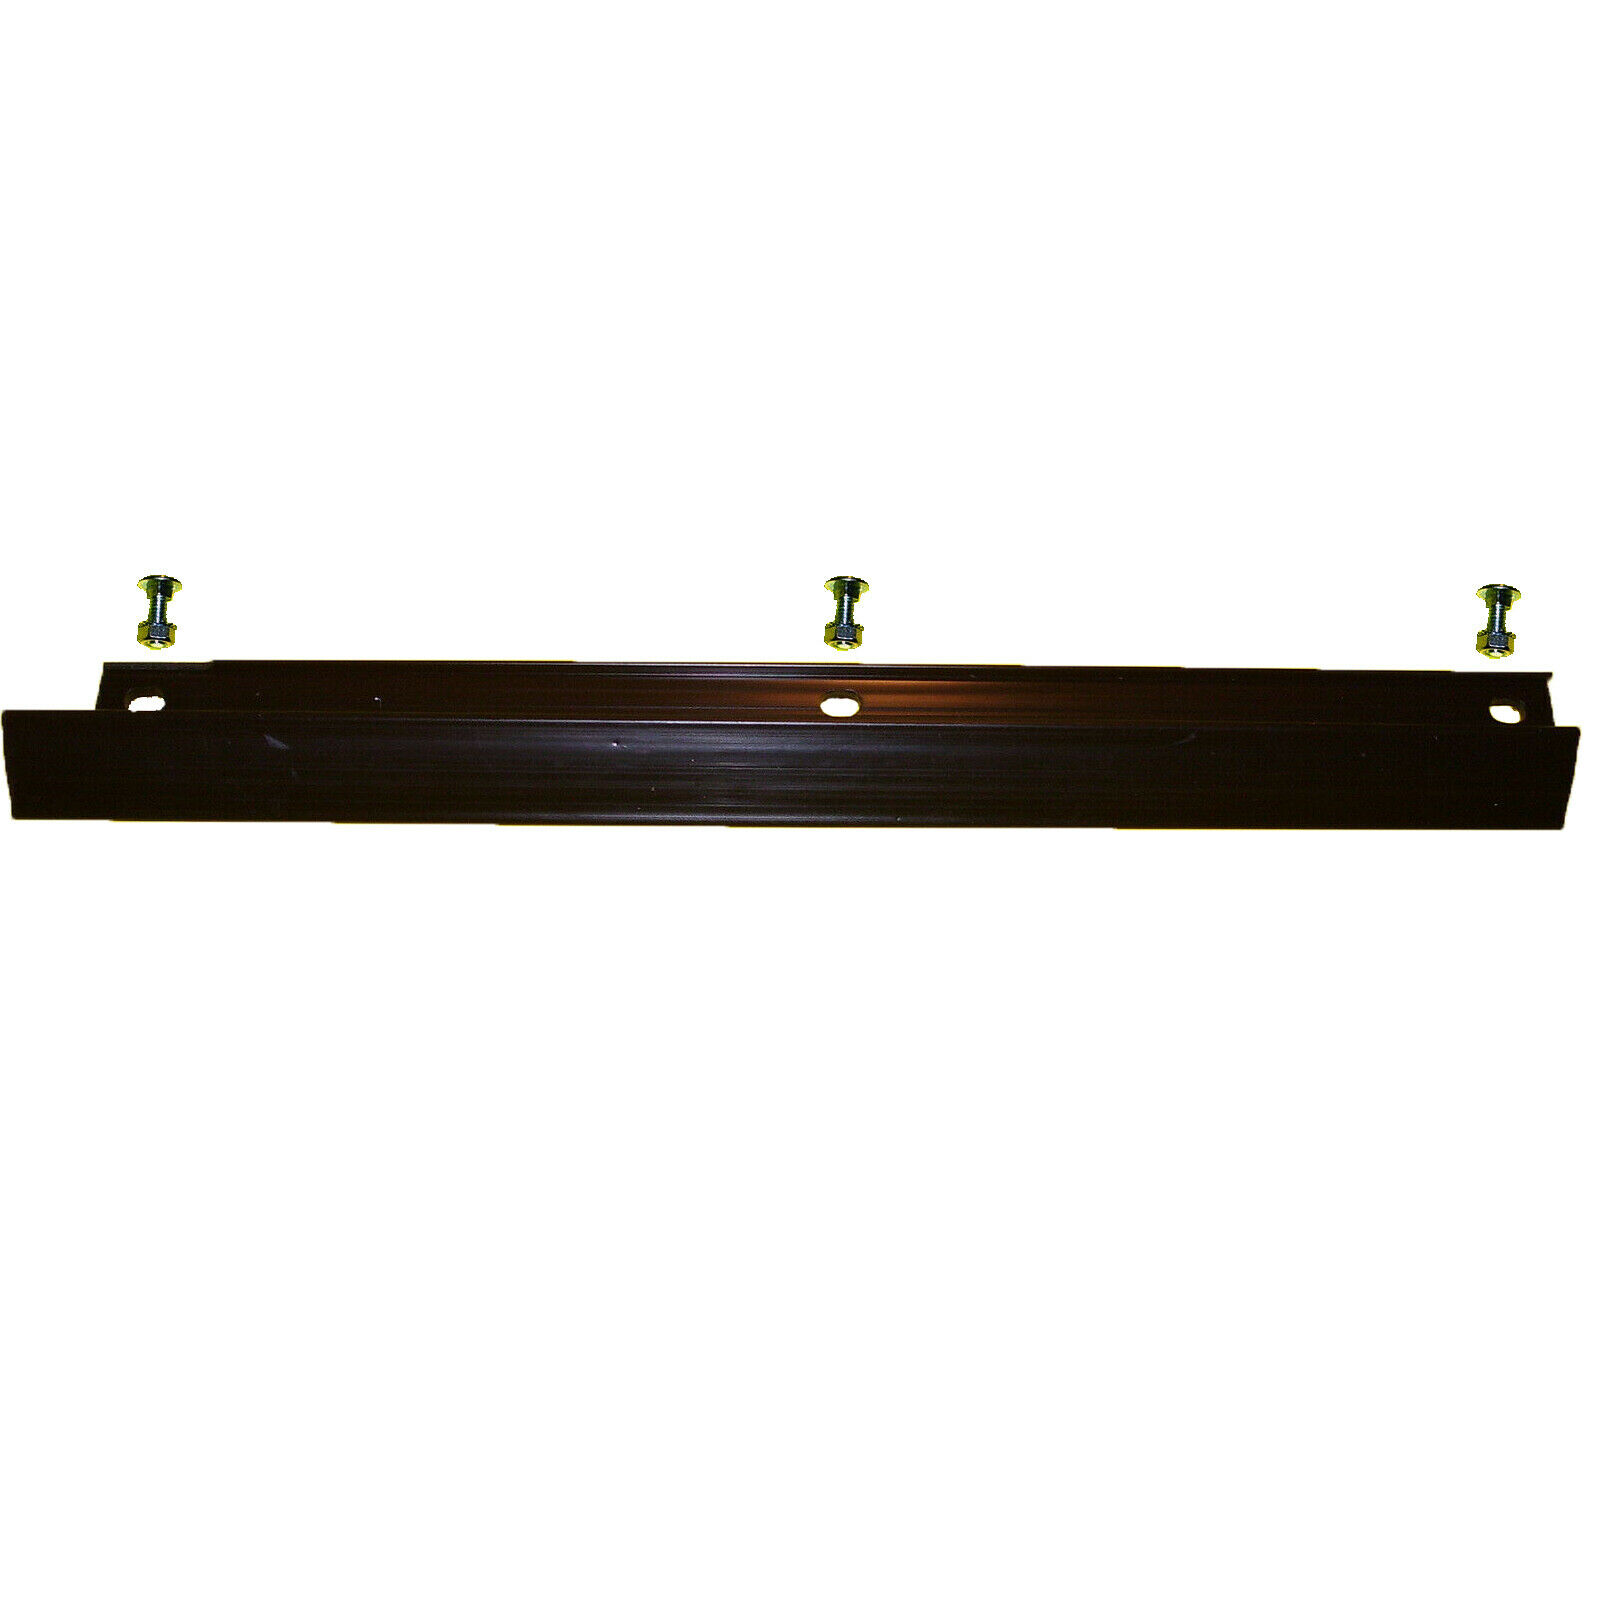 Replacement snow blower scraper bar with hardware Toro 55-8760